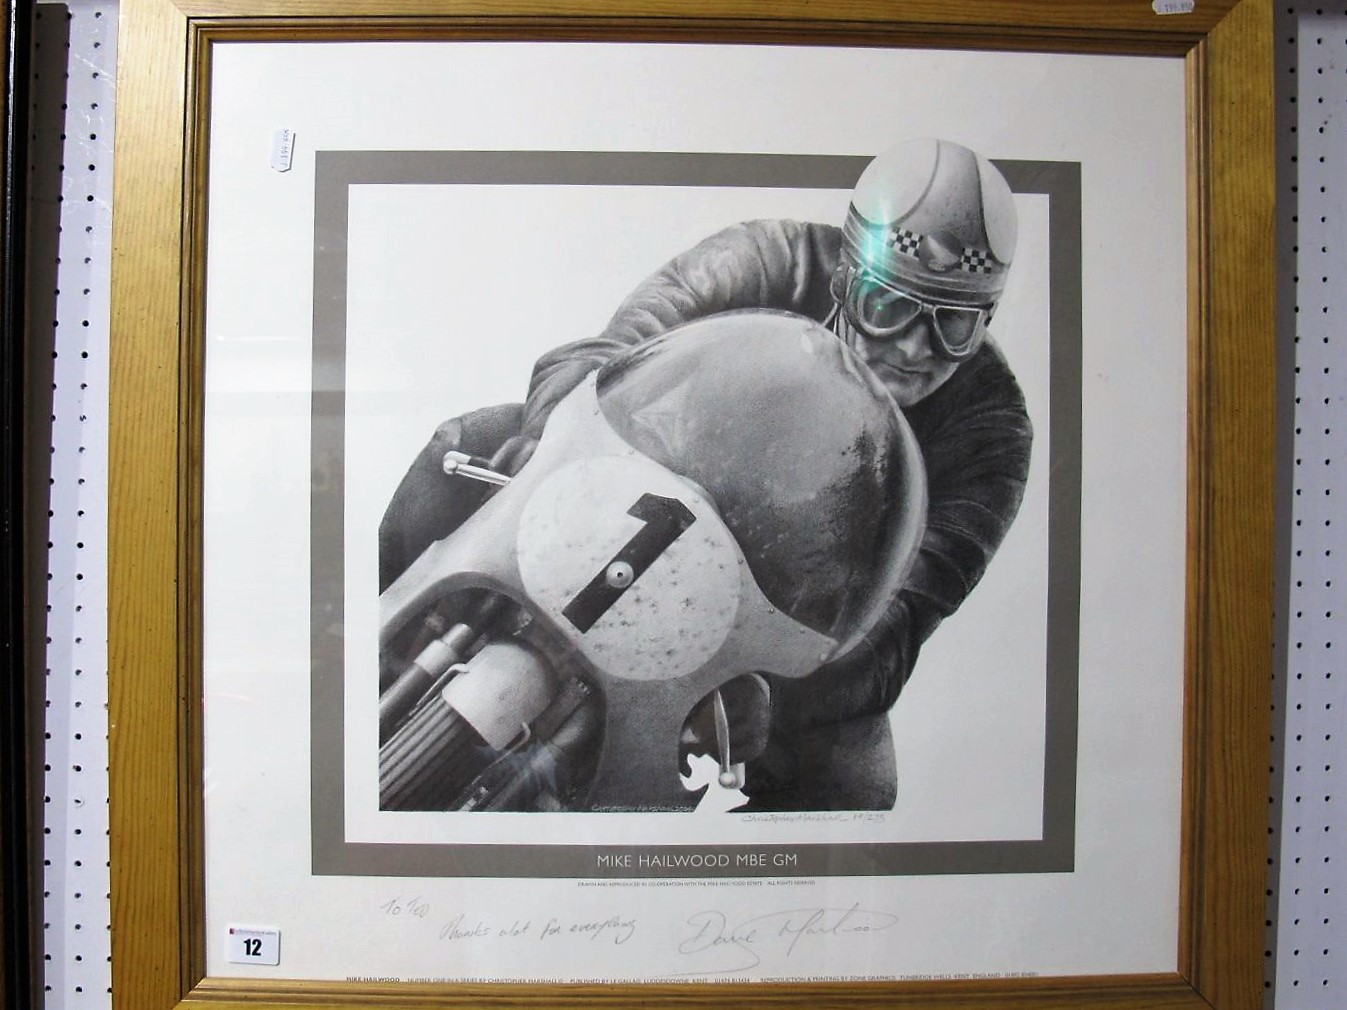 Lot 12 - After Christopher Marshall- 'Mike Hailwood MBE, GM, graphite signed by artist and Dave Hailwood (